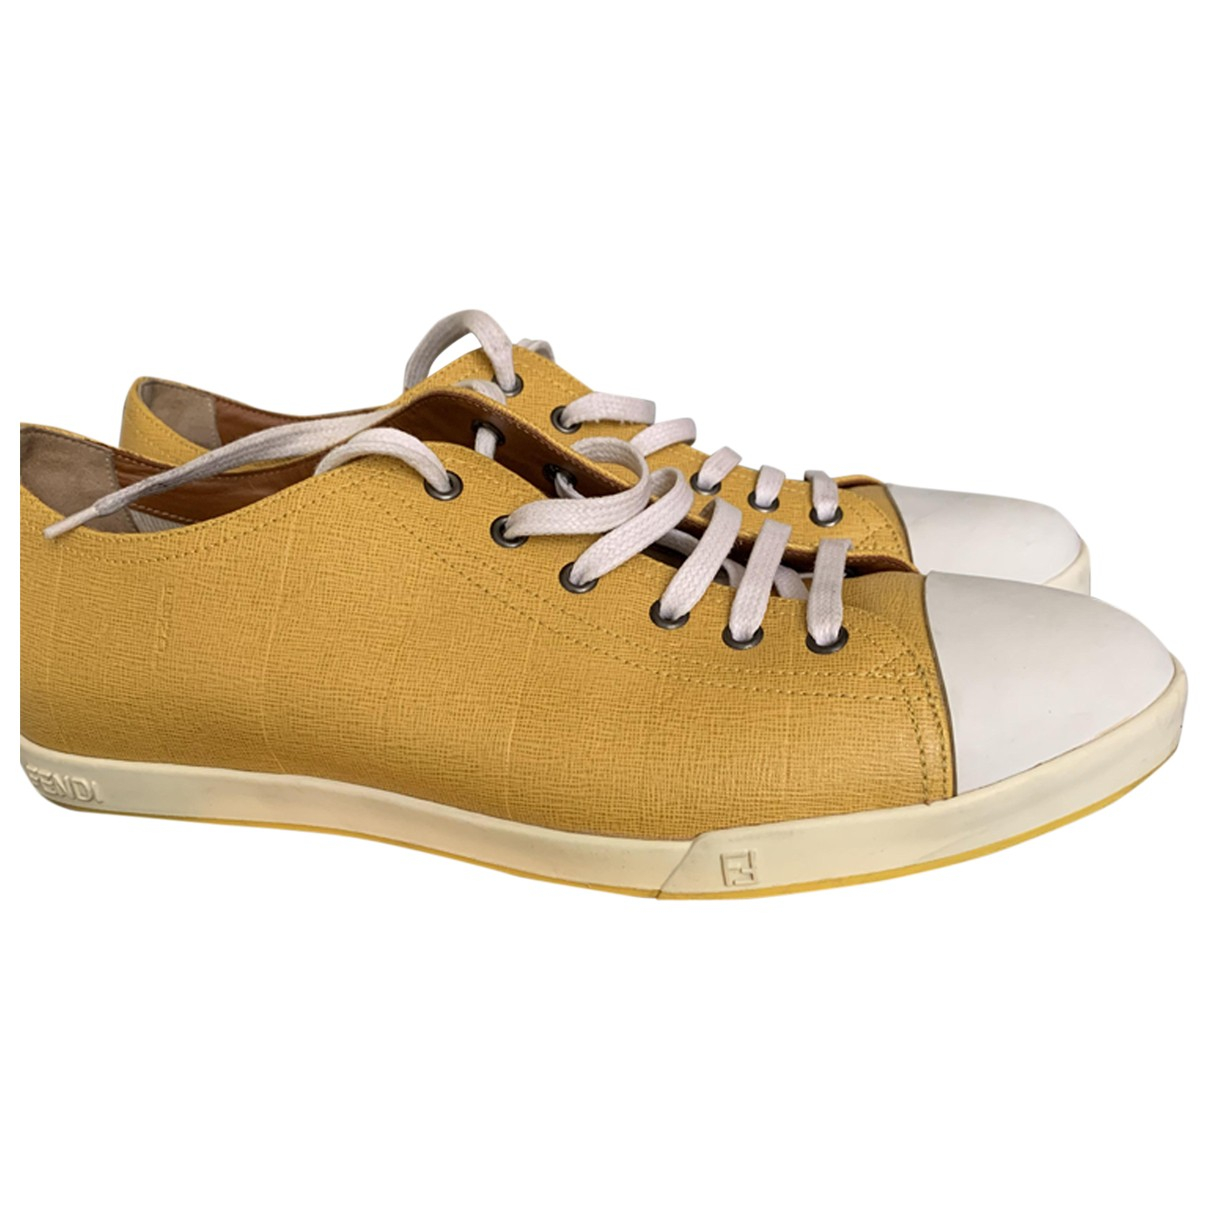 Fendi N Yellow Cloth Trainers for Men 10.5 US